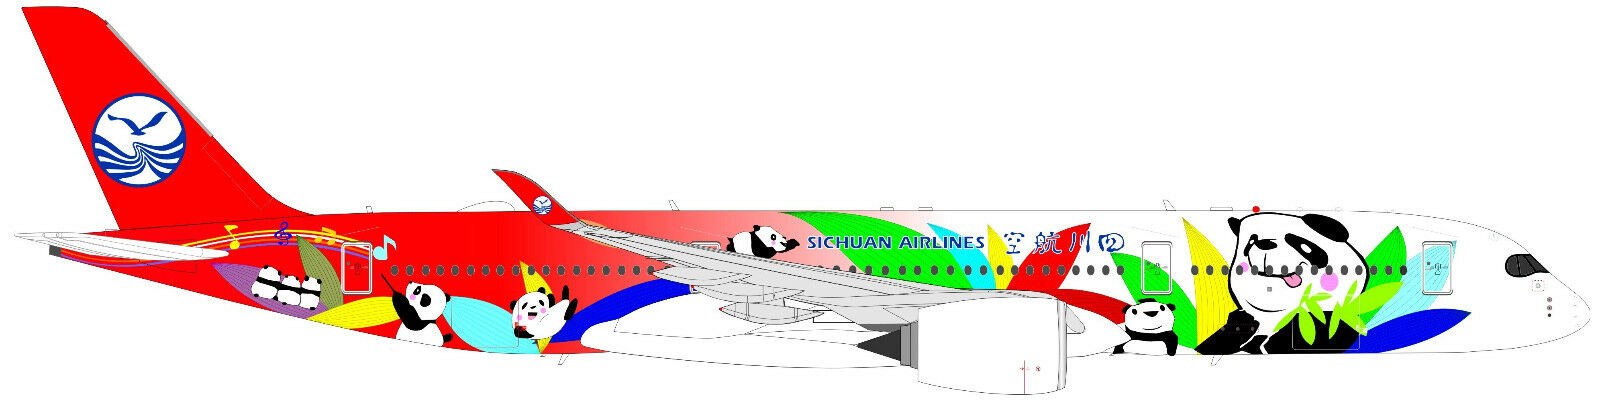 JC WINGS LH2116A 1 200 SICHUAN AIRLINES A350-900 PANDA LIVERY FLAPS DOWN W STAND